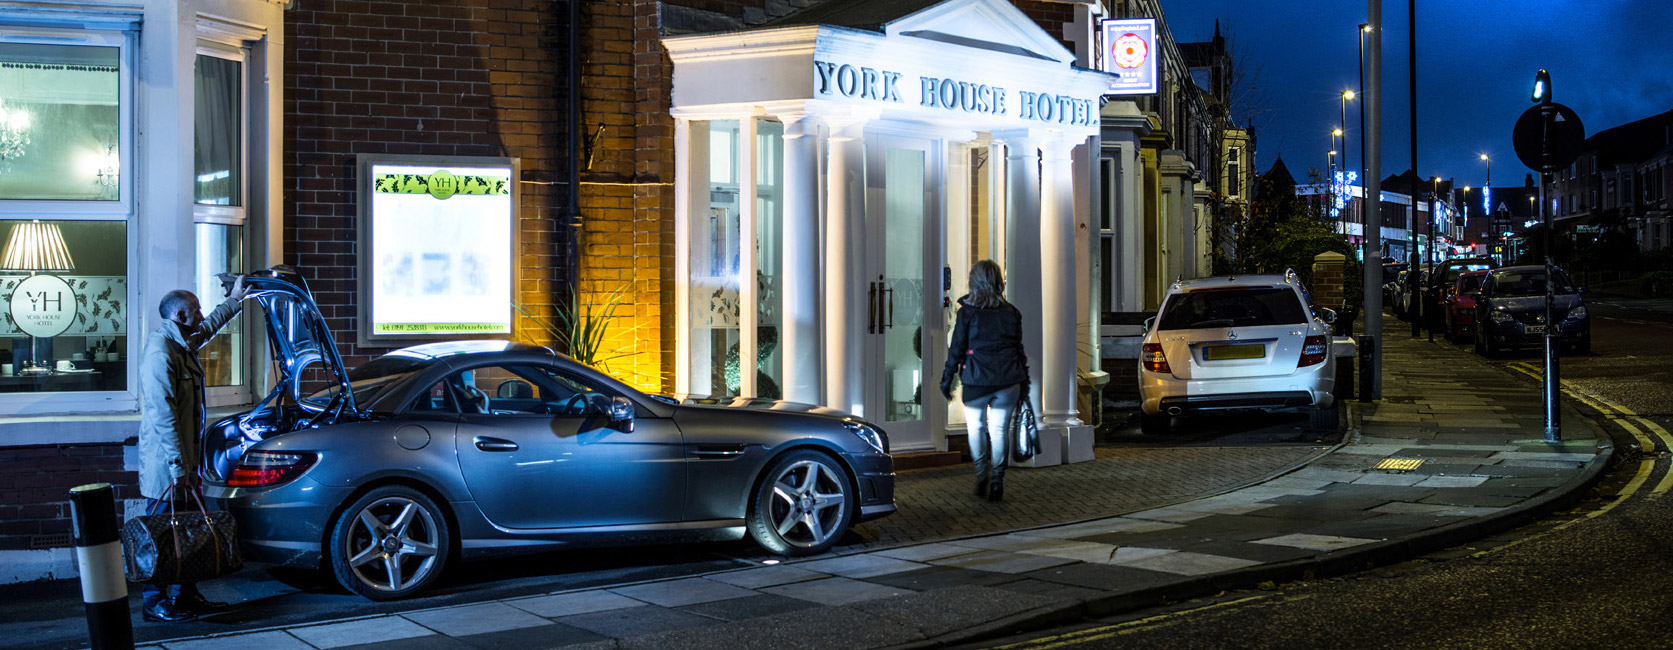 York House Hotel Entrance